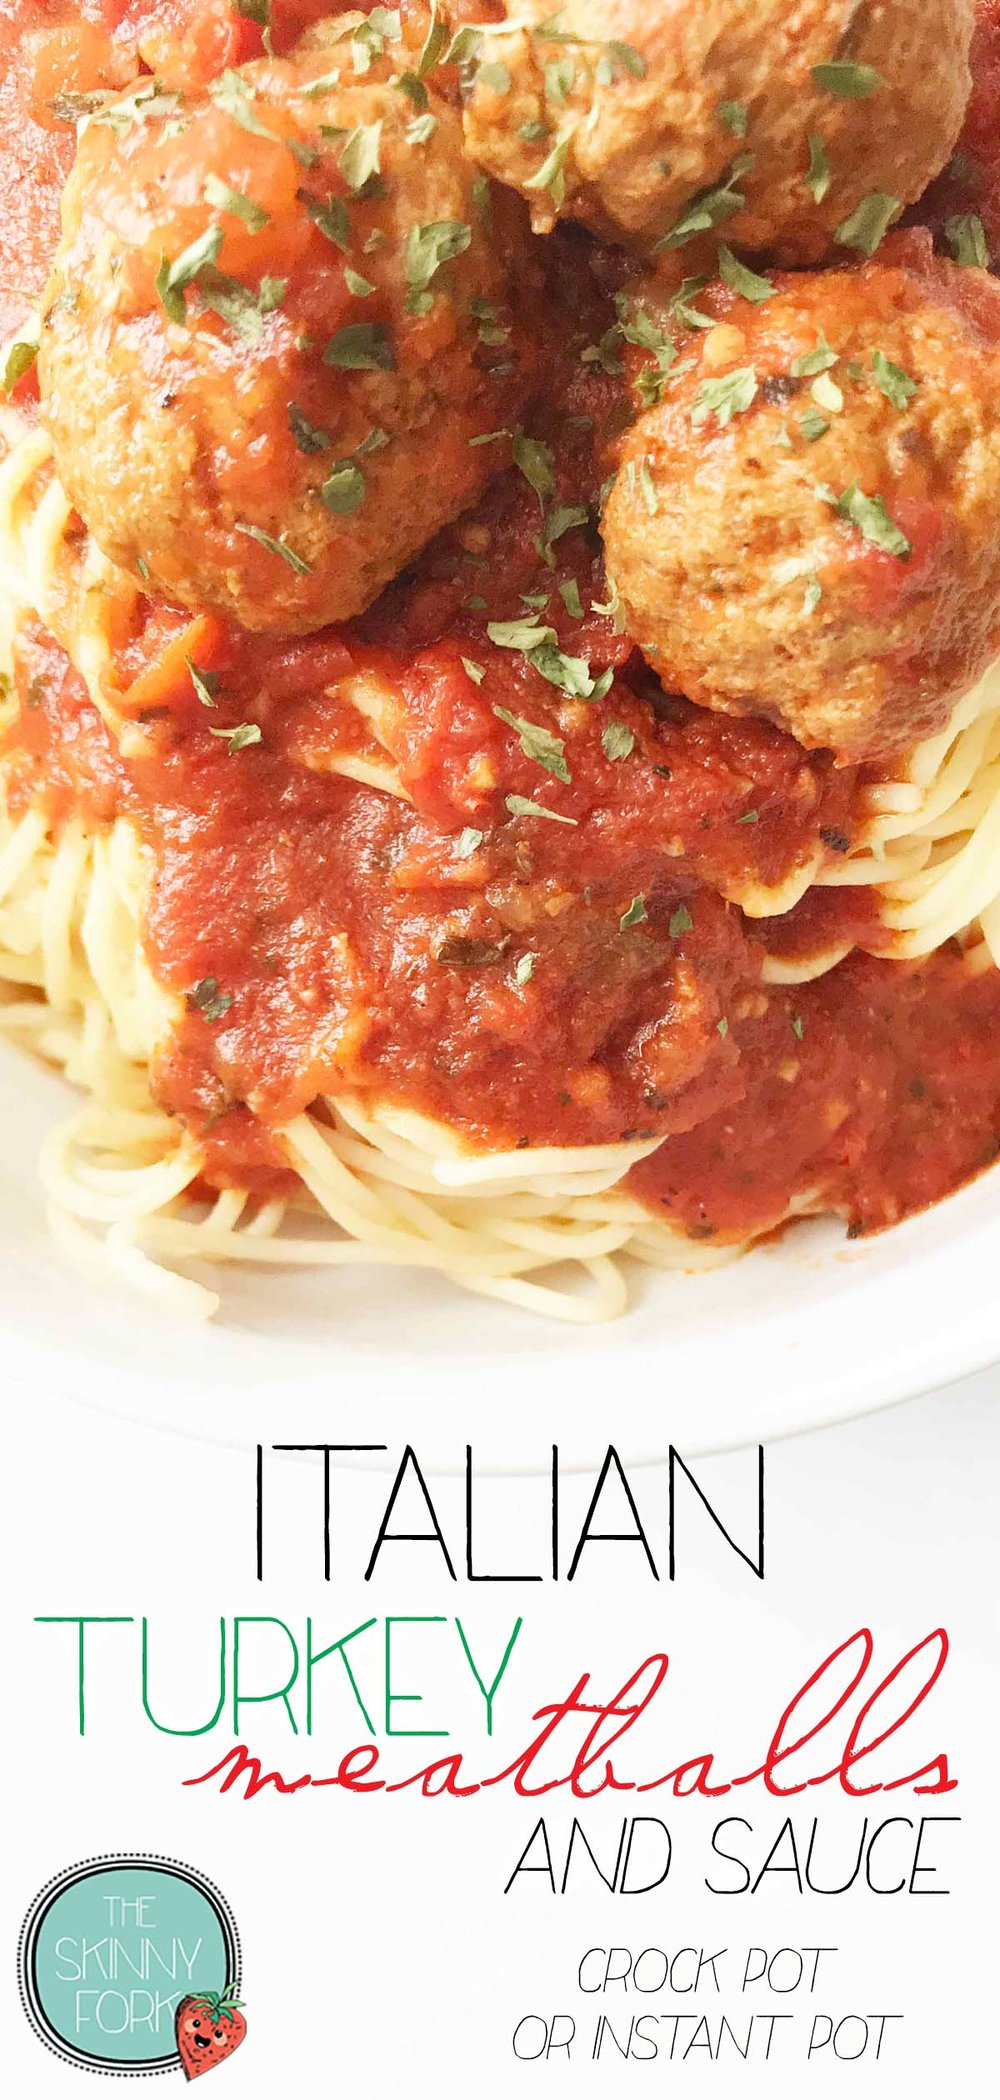 turkey-meatballs-spaghetti-pin.jpg